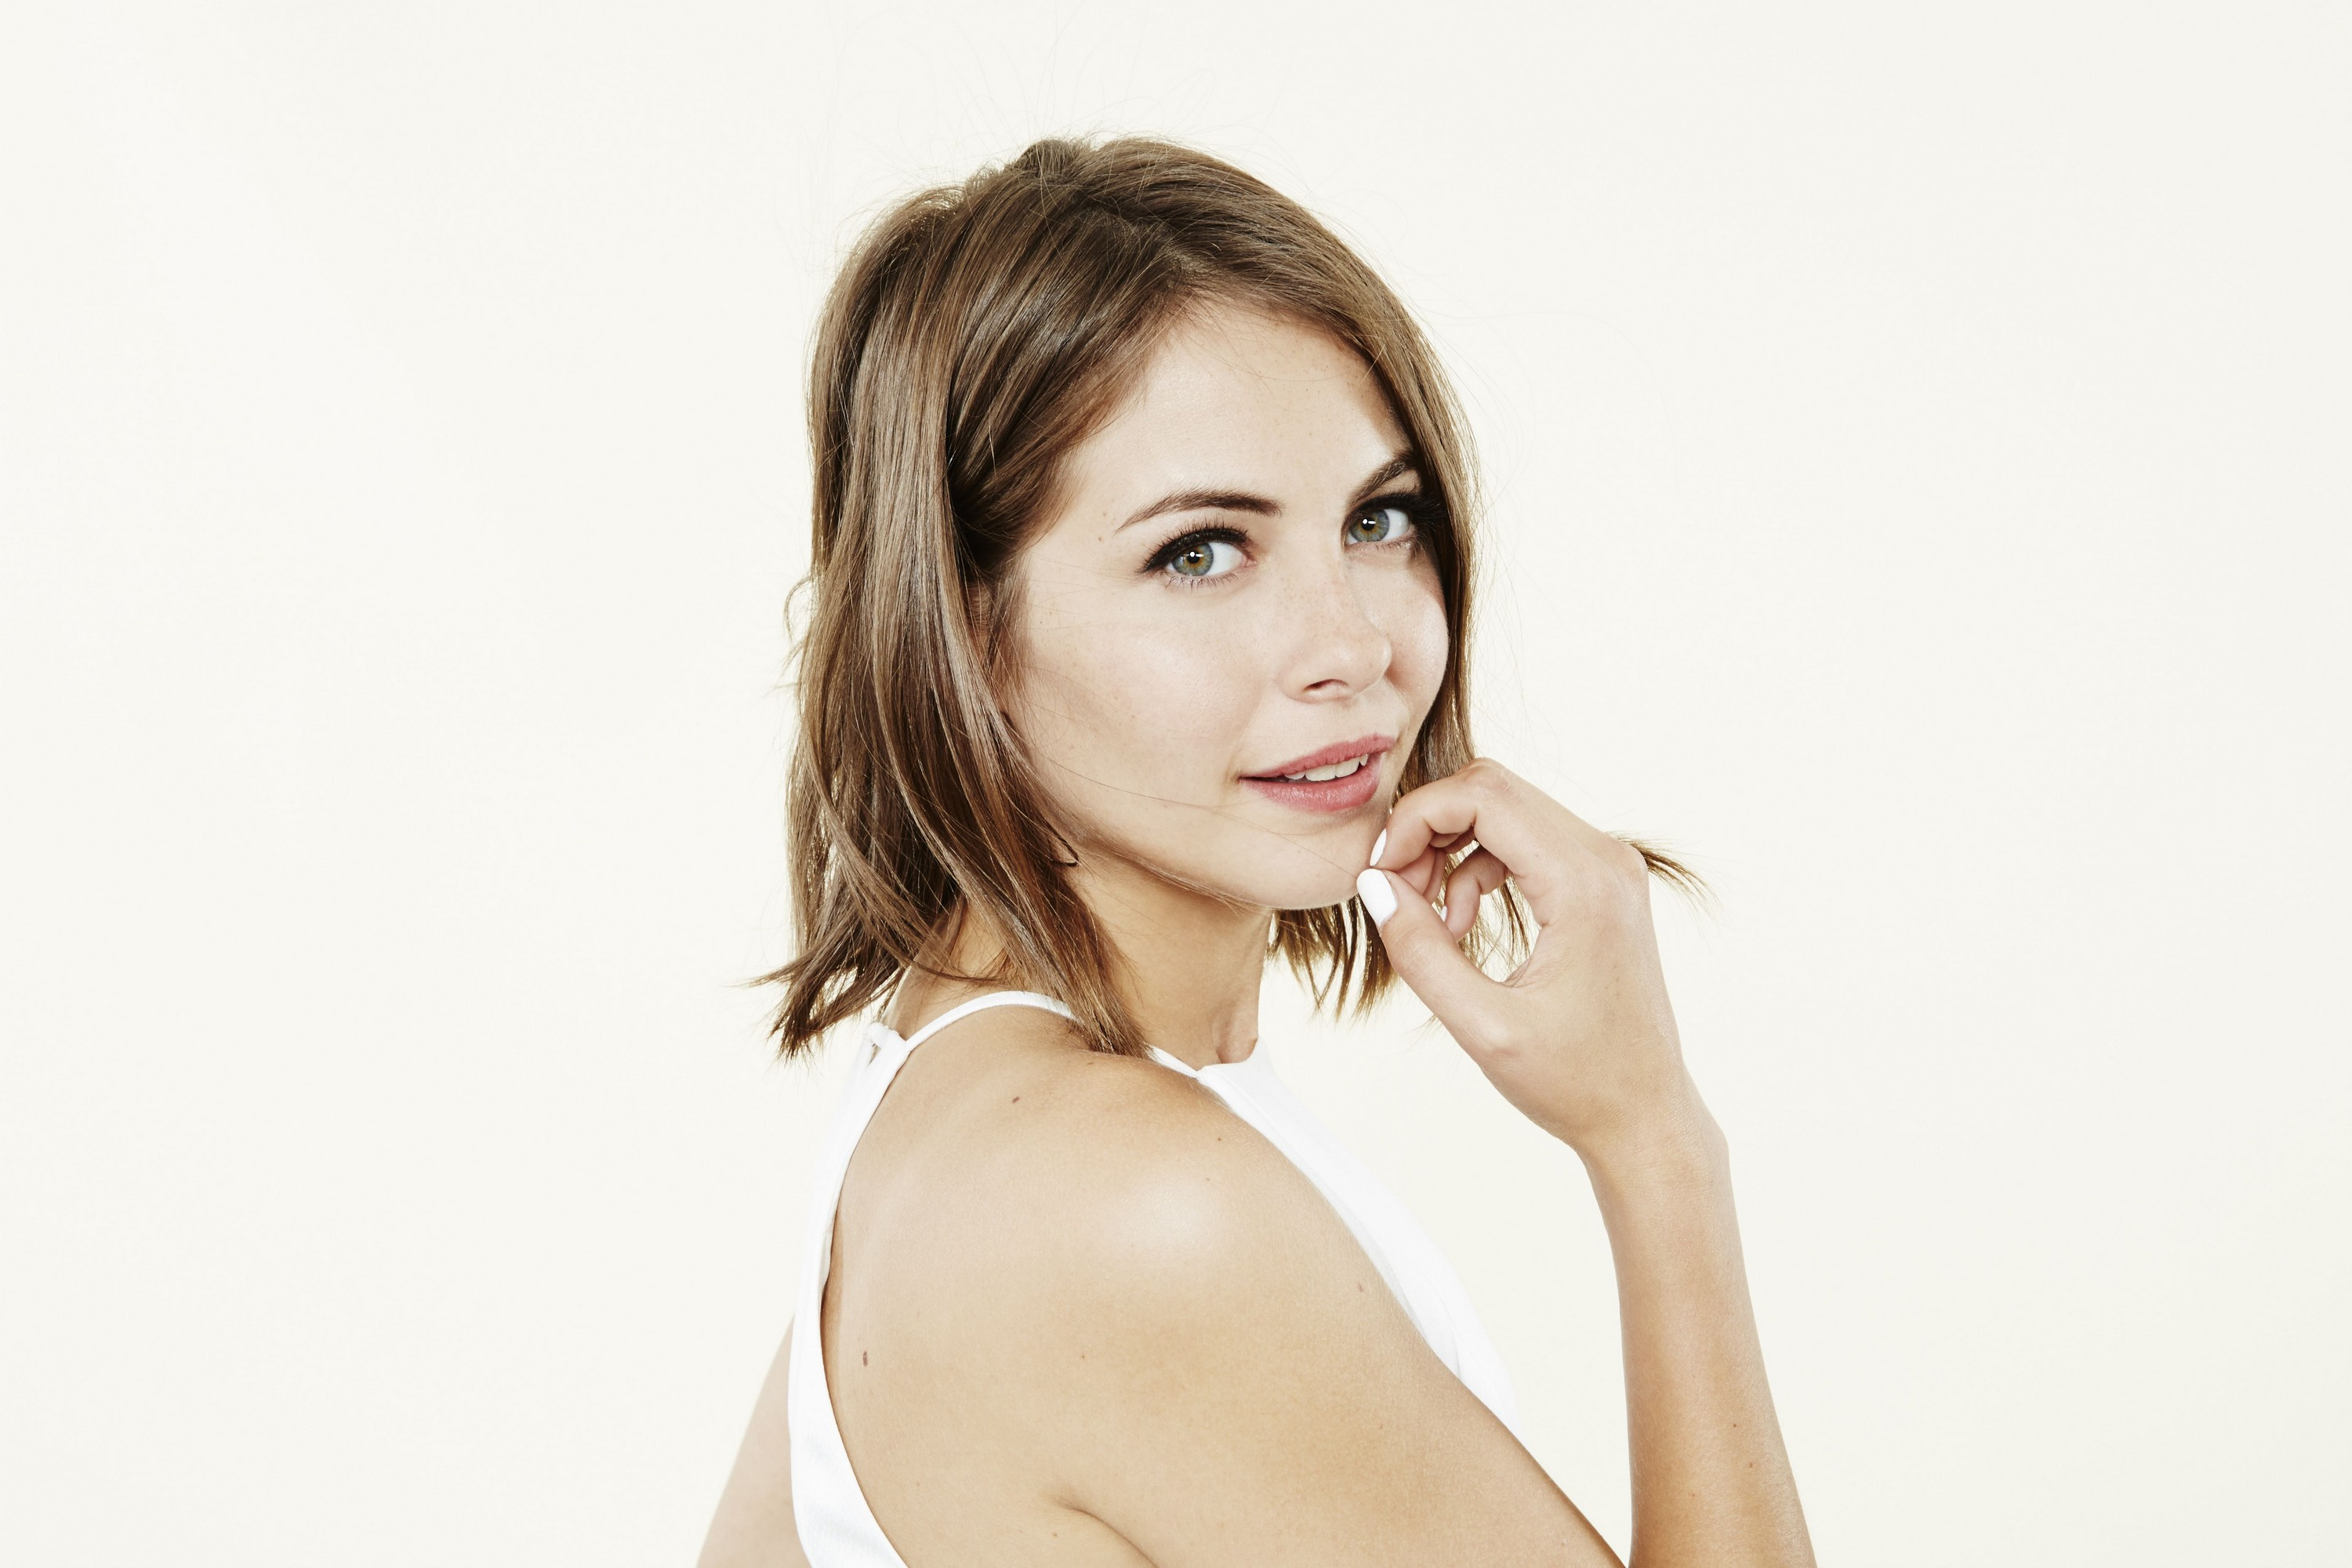 3000x2000 - Willa Holland Wallpapers 10